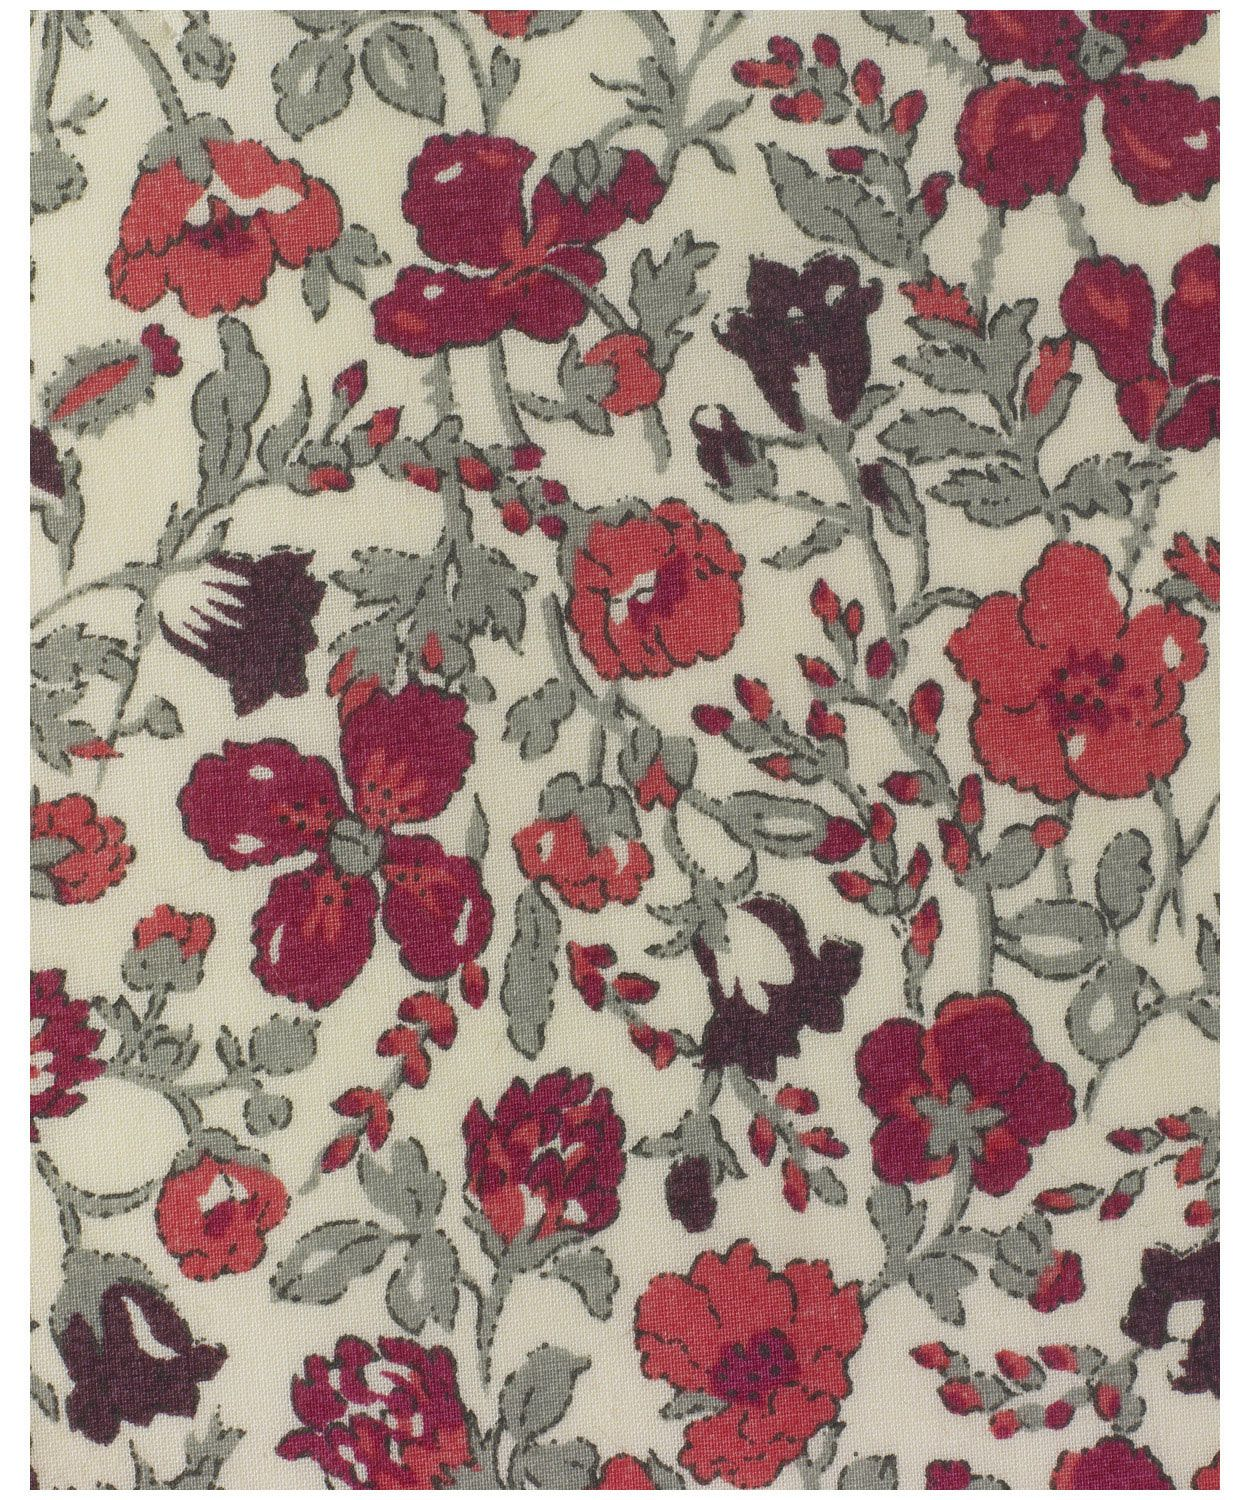 Liberty print Meadow E tana lawn from the Liberty Art Fabrics collection. This is an original 1930's floral design. It was printed as a wood block print at Liberty's Merton printworks. Meadow was revived by Susan Collier in the 1970s and has been on Classic Tana since 1986.